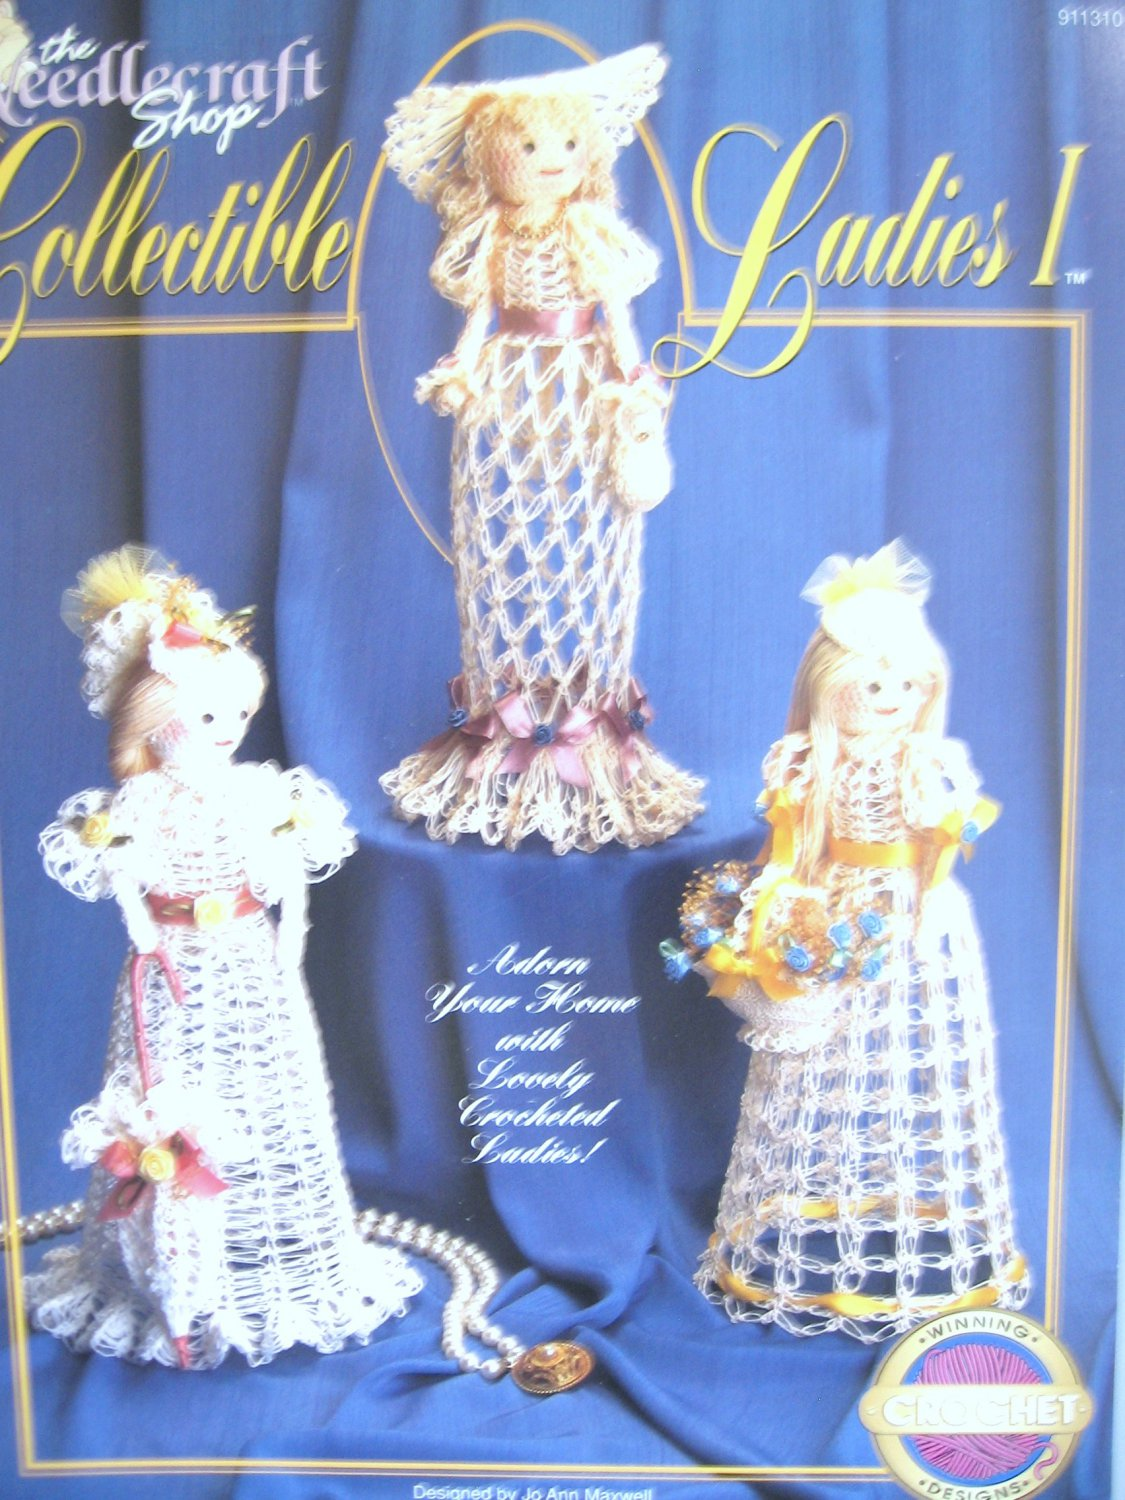 Collectible Ladies I Crochet Patterns by Needlecraft Shop